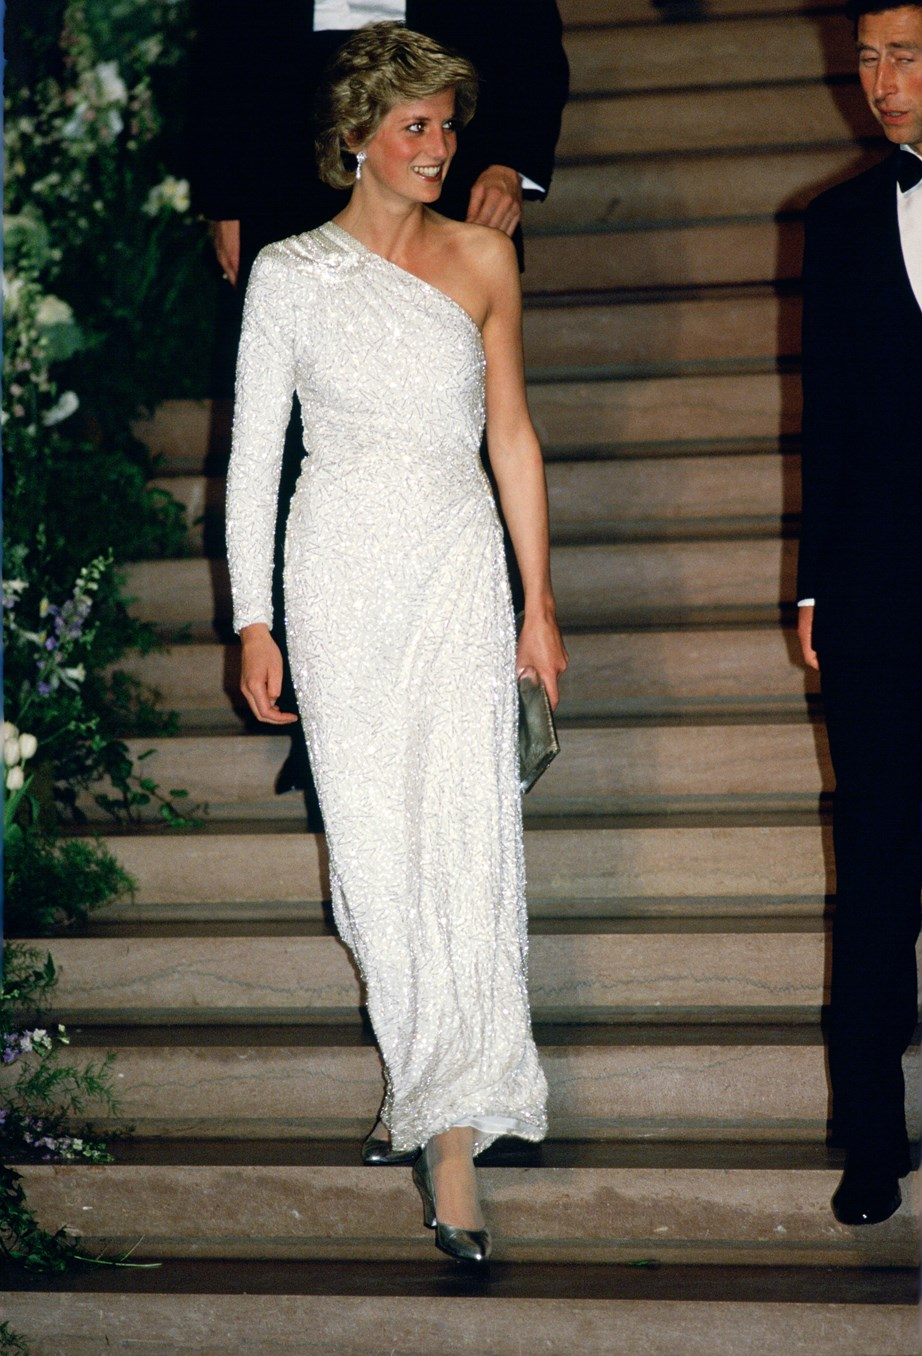 During her time in the royal family Princess Diana was also a fashion icon of the time. Here's her in an ivory Hachi gown during a gala dinner in Washington DC in November 1985. The one-shouldered silhouette was a favourite of hers. *(Image: Getty)*